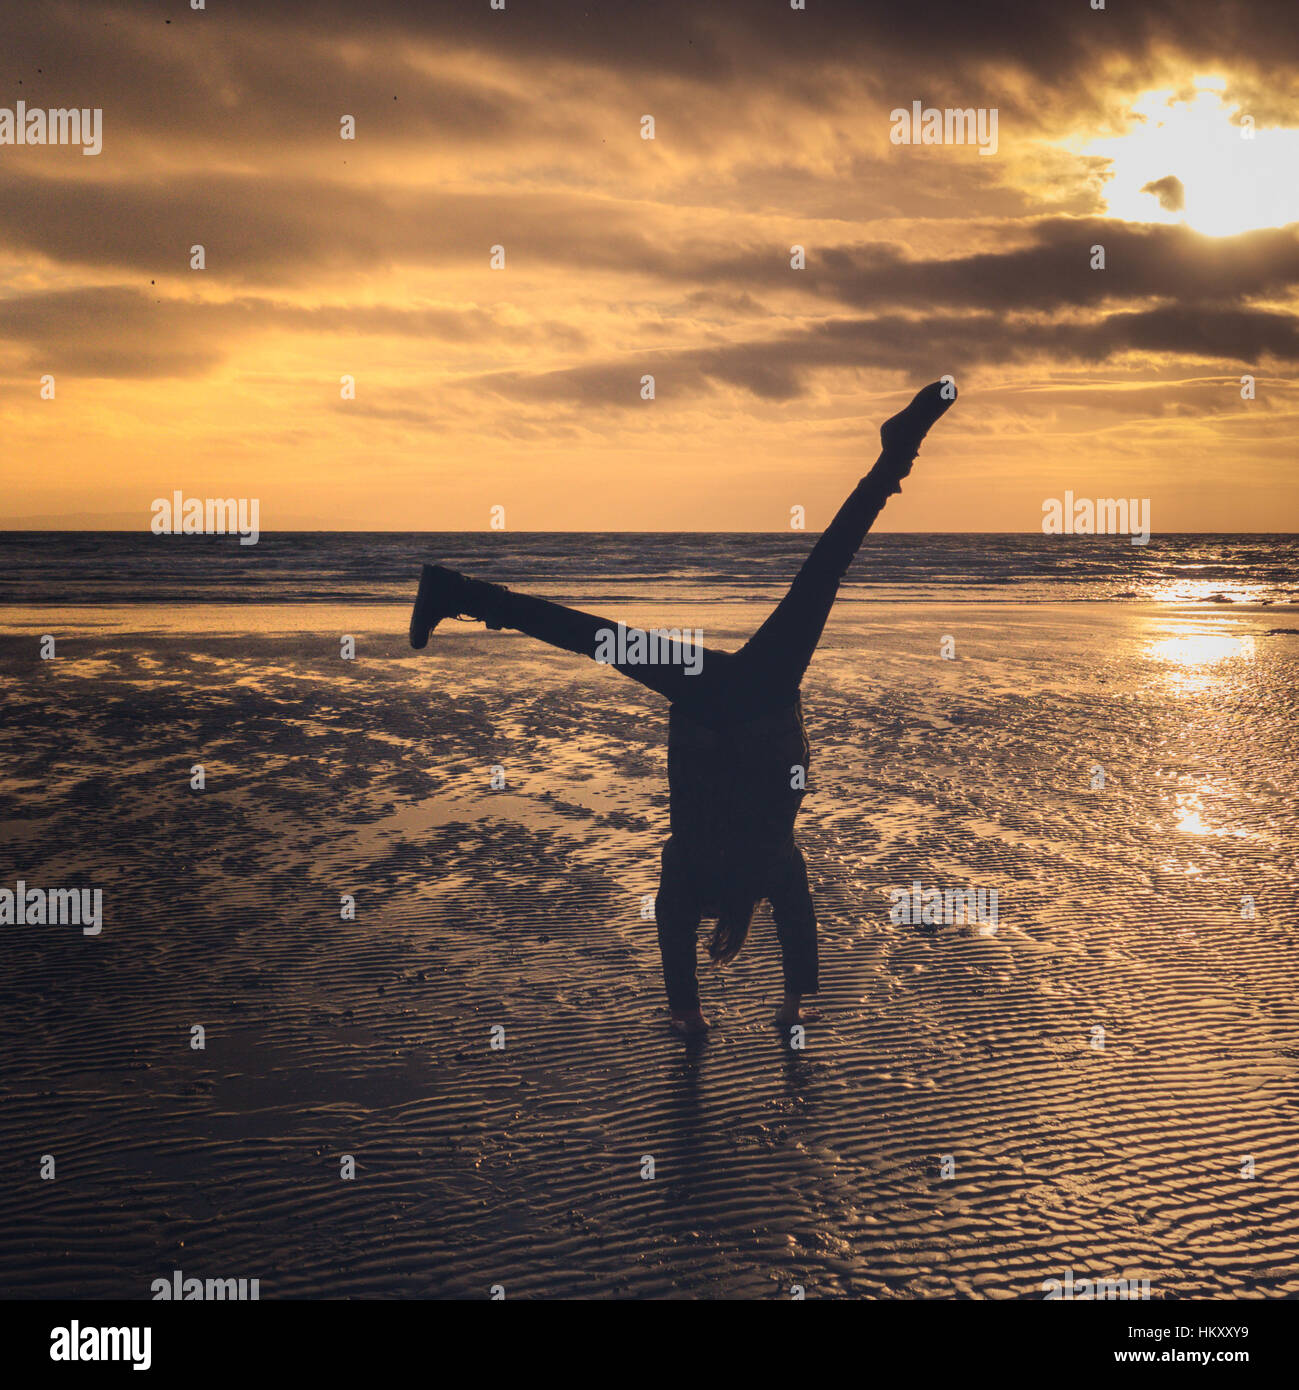 Girl Does A Cartwheel On The Beach At Sunset Stock Photo